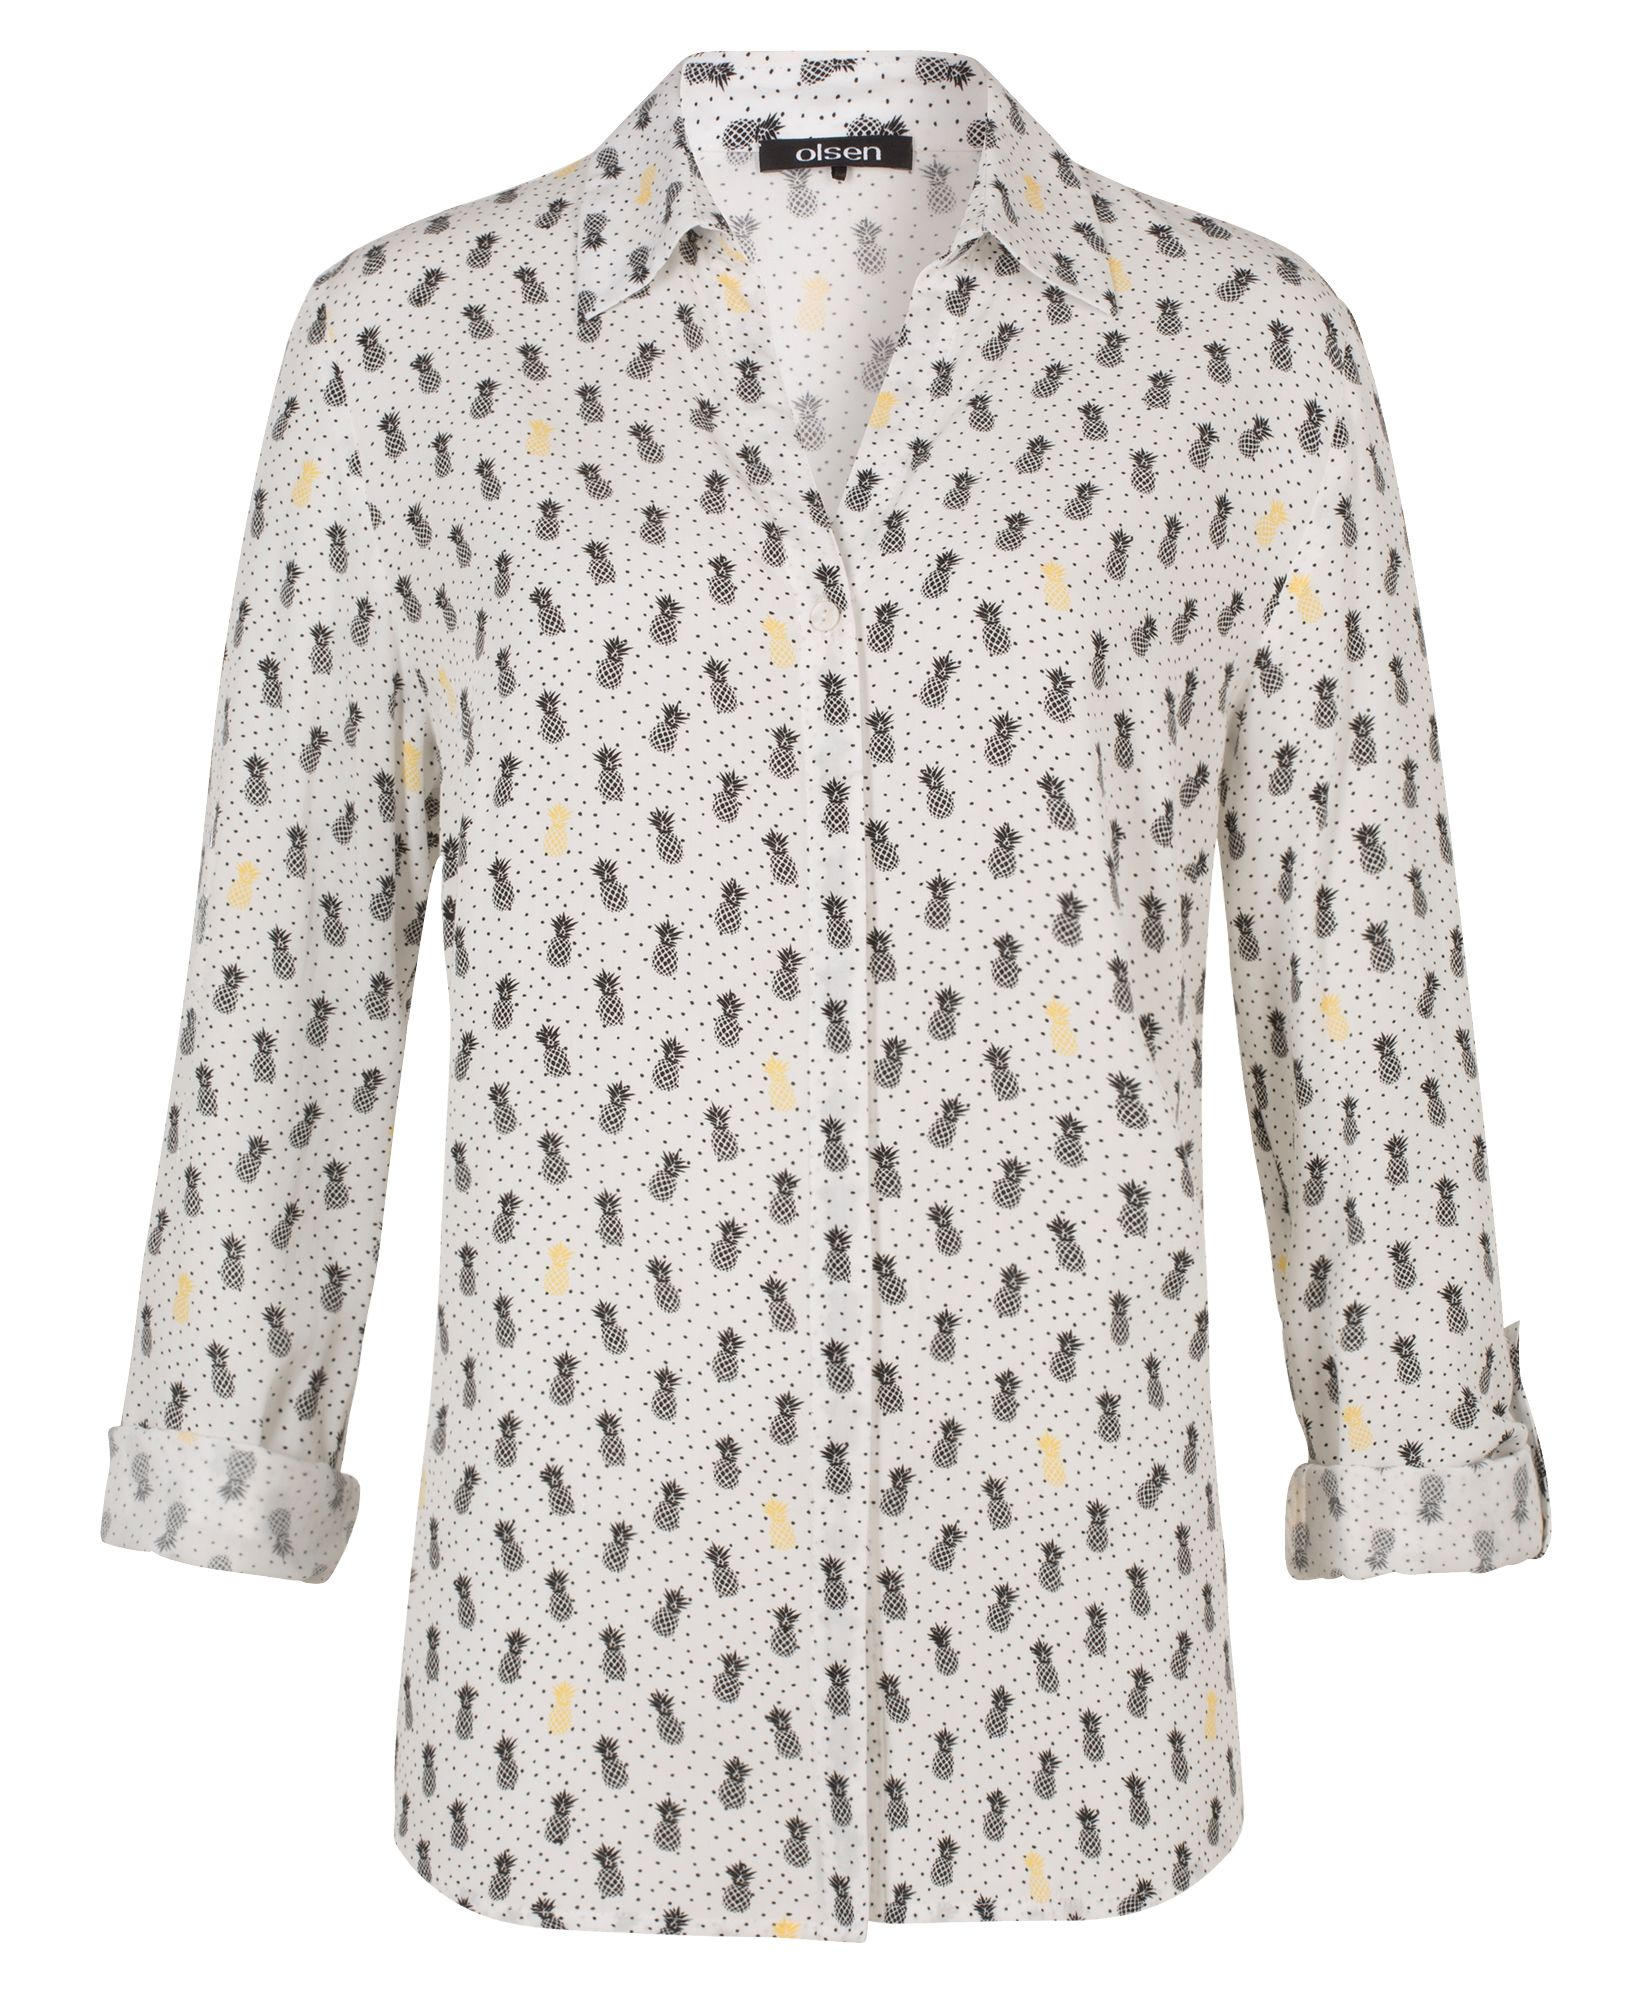 Olsen Blouse Woven Long Sleeves, Off White